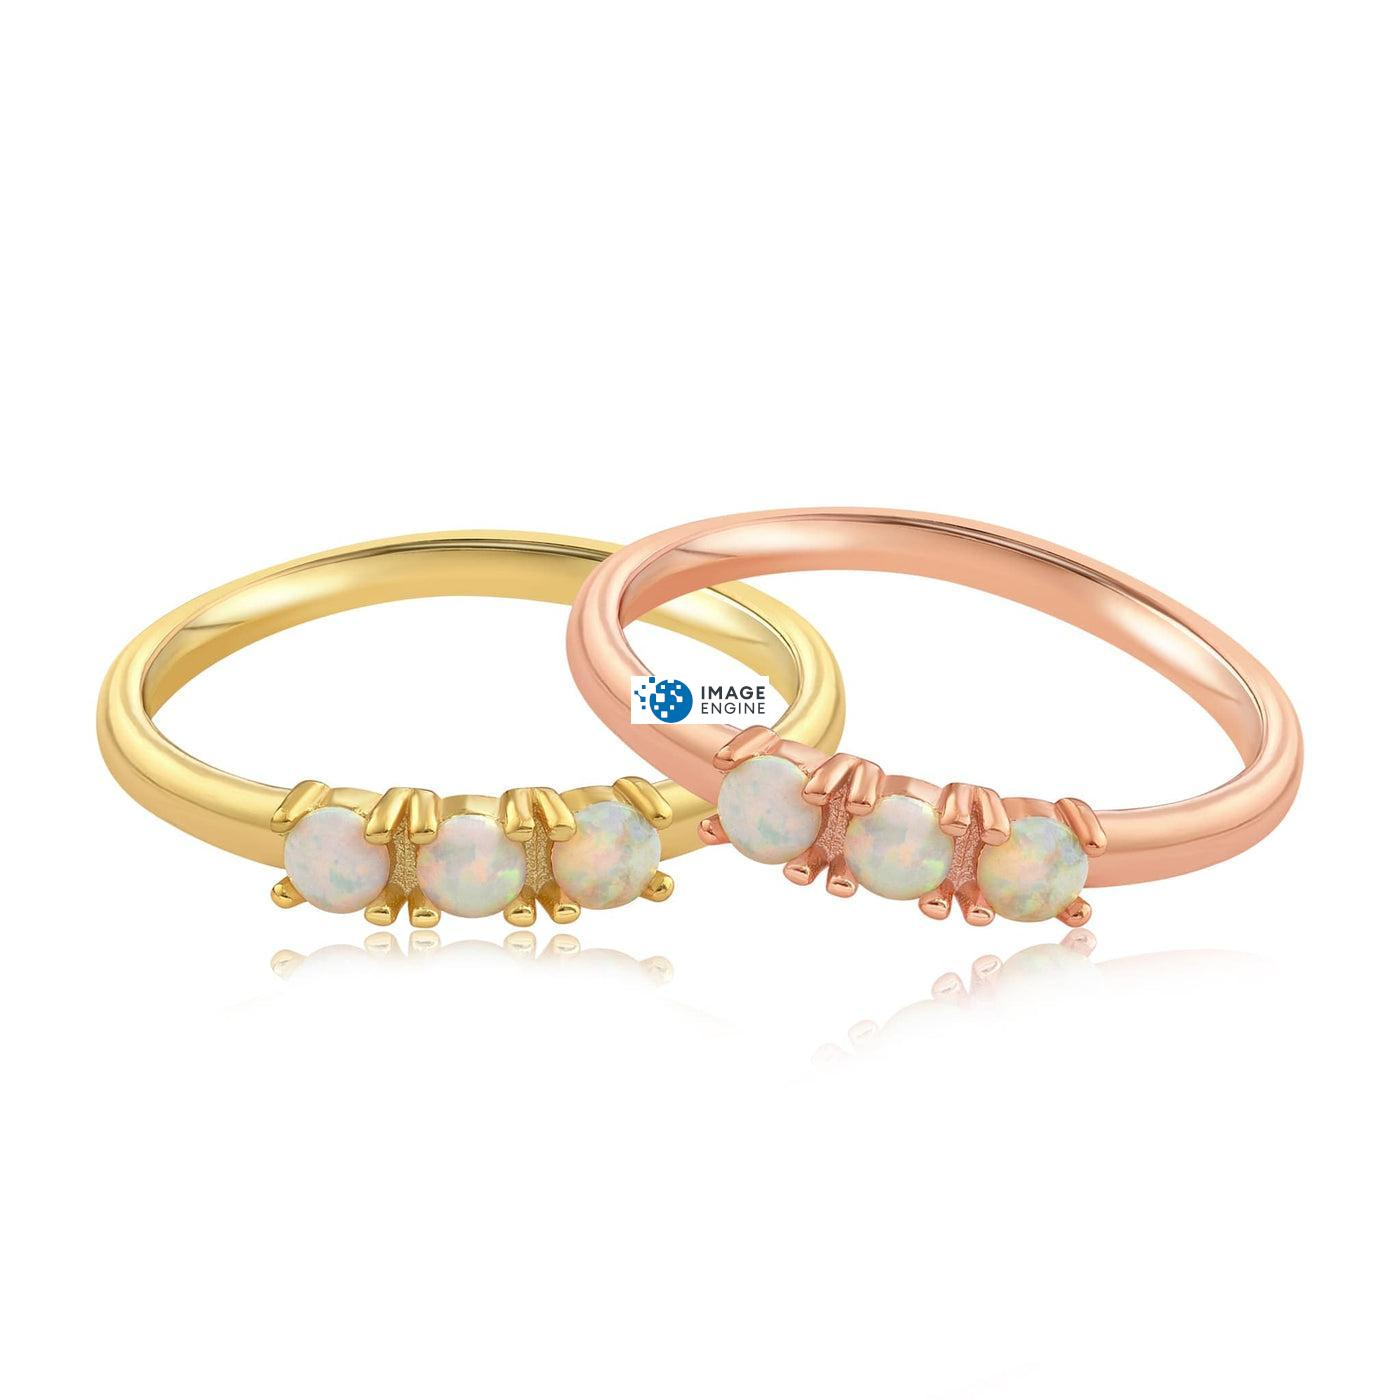 Simple Dots White Fire Opal Ring - Front View Side by Side - 18K Rose Gold Vermeil and 18K Yellow Gold Vermeil